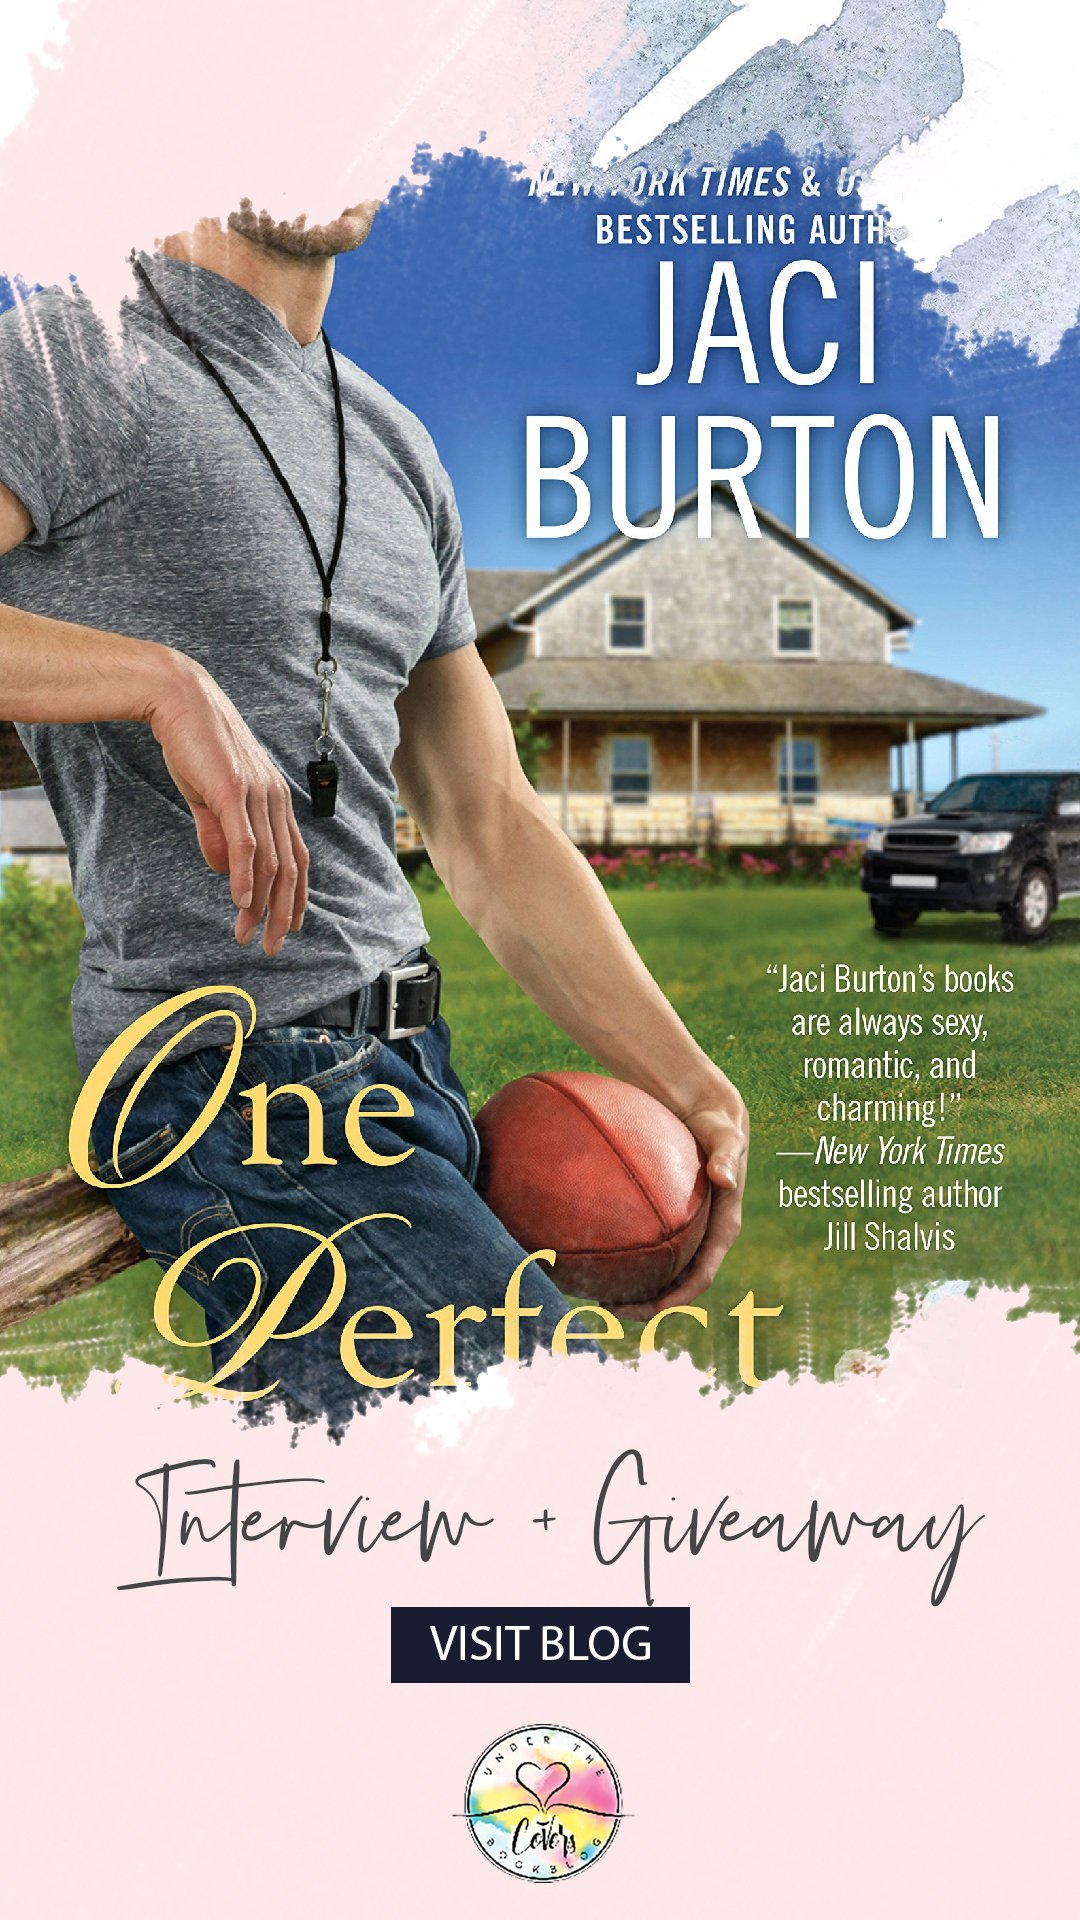 Interview and Giveaway with Jaci Burton